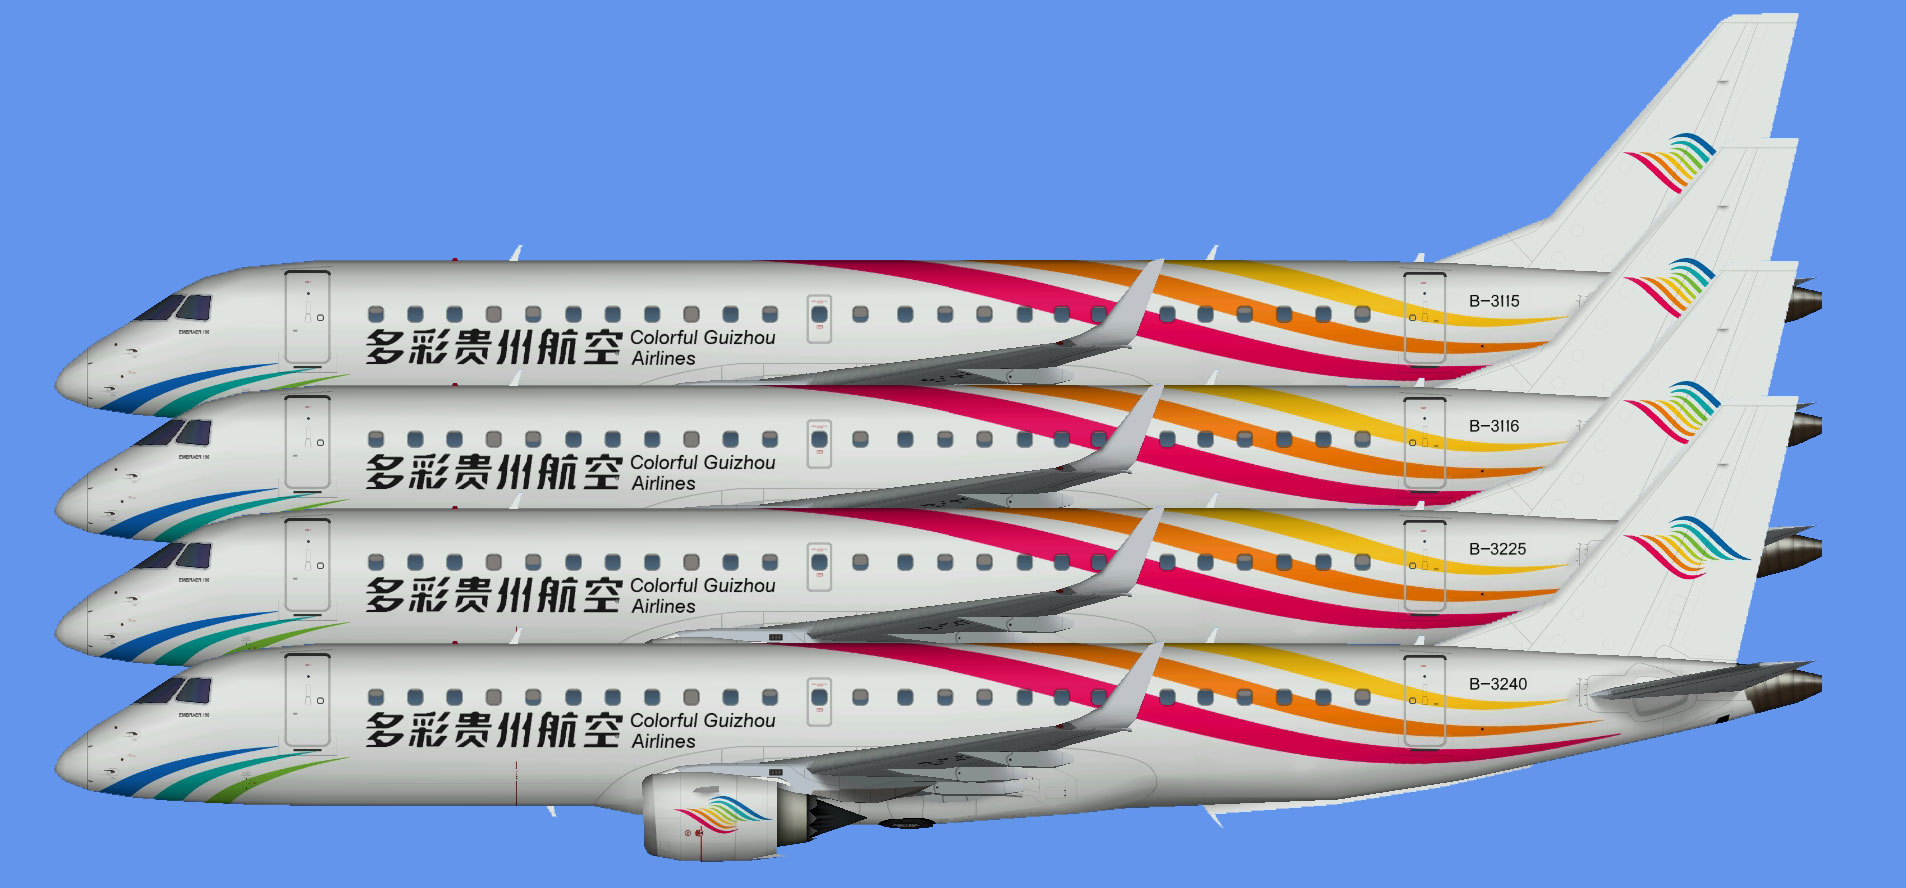 Colorful Guizhou Airlines E-190